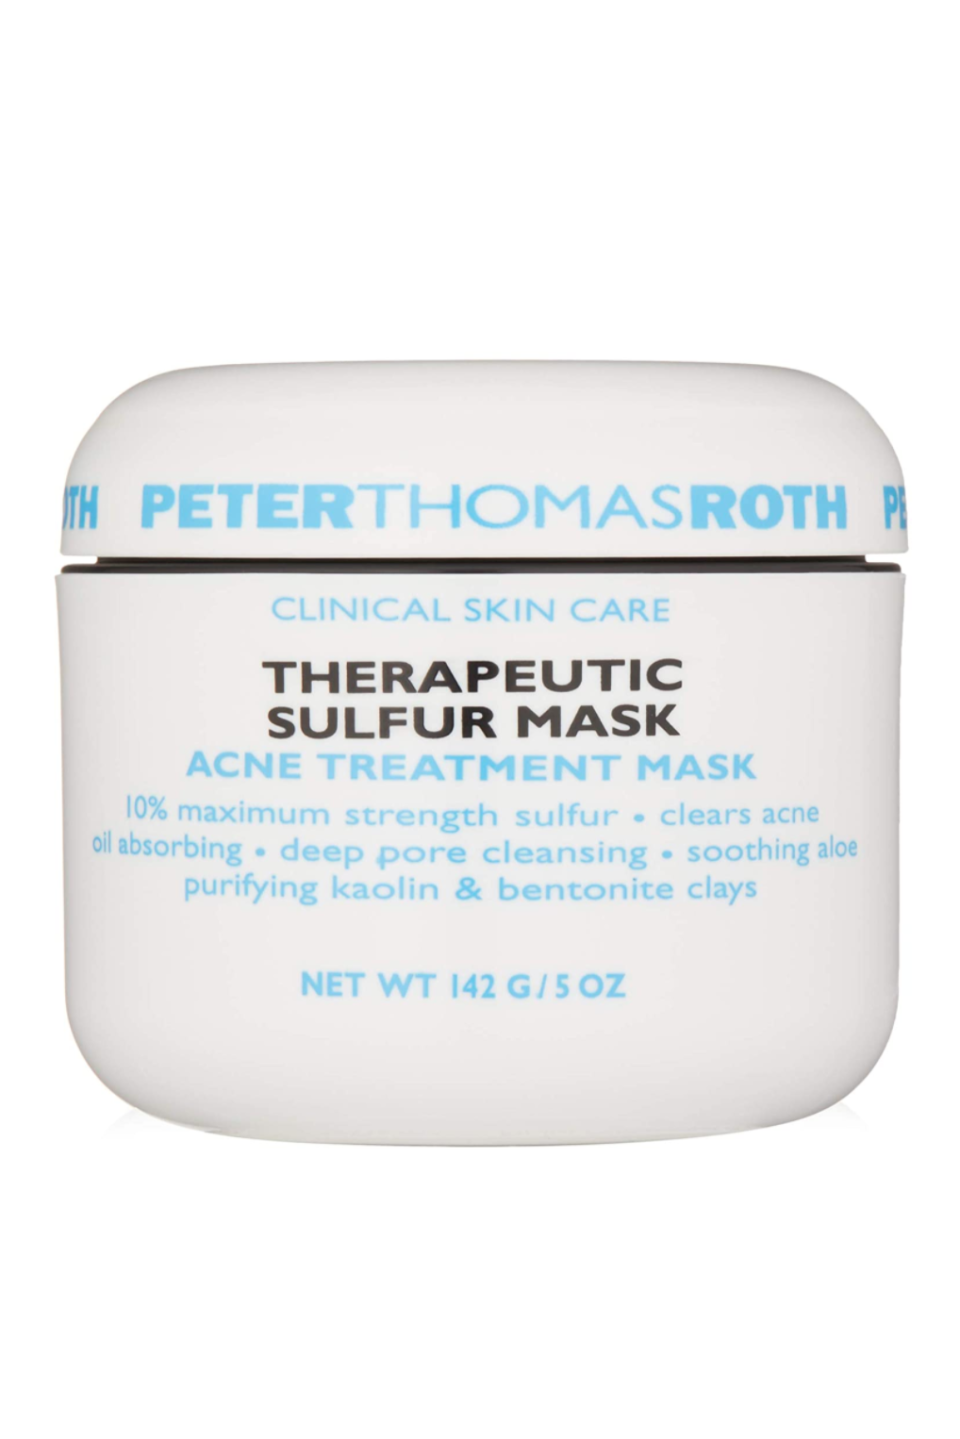 "<p><strong>Peter Thomas Roth</strong></p><p>amazon.com</p><p><strong>$52.00</strong></p><p><a href=""https://www.amazon.com/dp/B008MIFO94?tag=syn-yahoo-20&ascsubtag=%5Bartid%7C10058.g.35927175%5Bsrc%7Cyahoo-us"" rel=""nofollow noopener"" target=""_blank"" data-ylk=""slk:SHOP IT"" class=""link rapid-noclick-resp"">SHOP IT</a></p><p>Sulfer is a potent purifying, and this mask blends it with two types of clay to treat bad breakouts. Hot tip: add some to your shoulders if you suffer from back-ne. </p>"